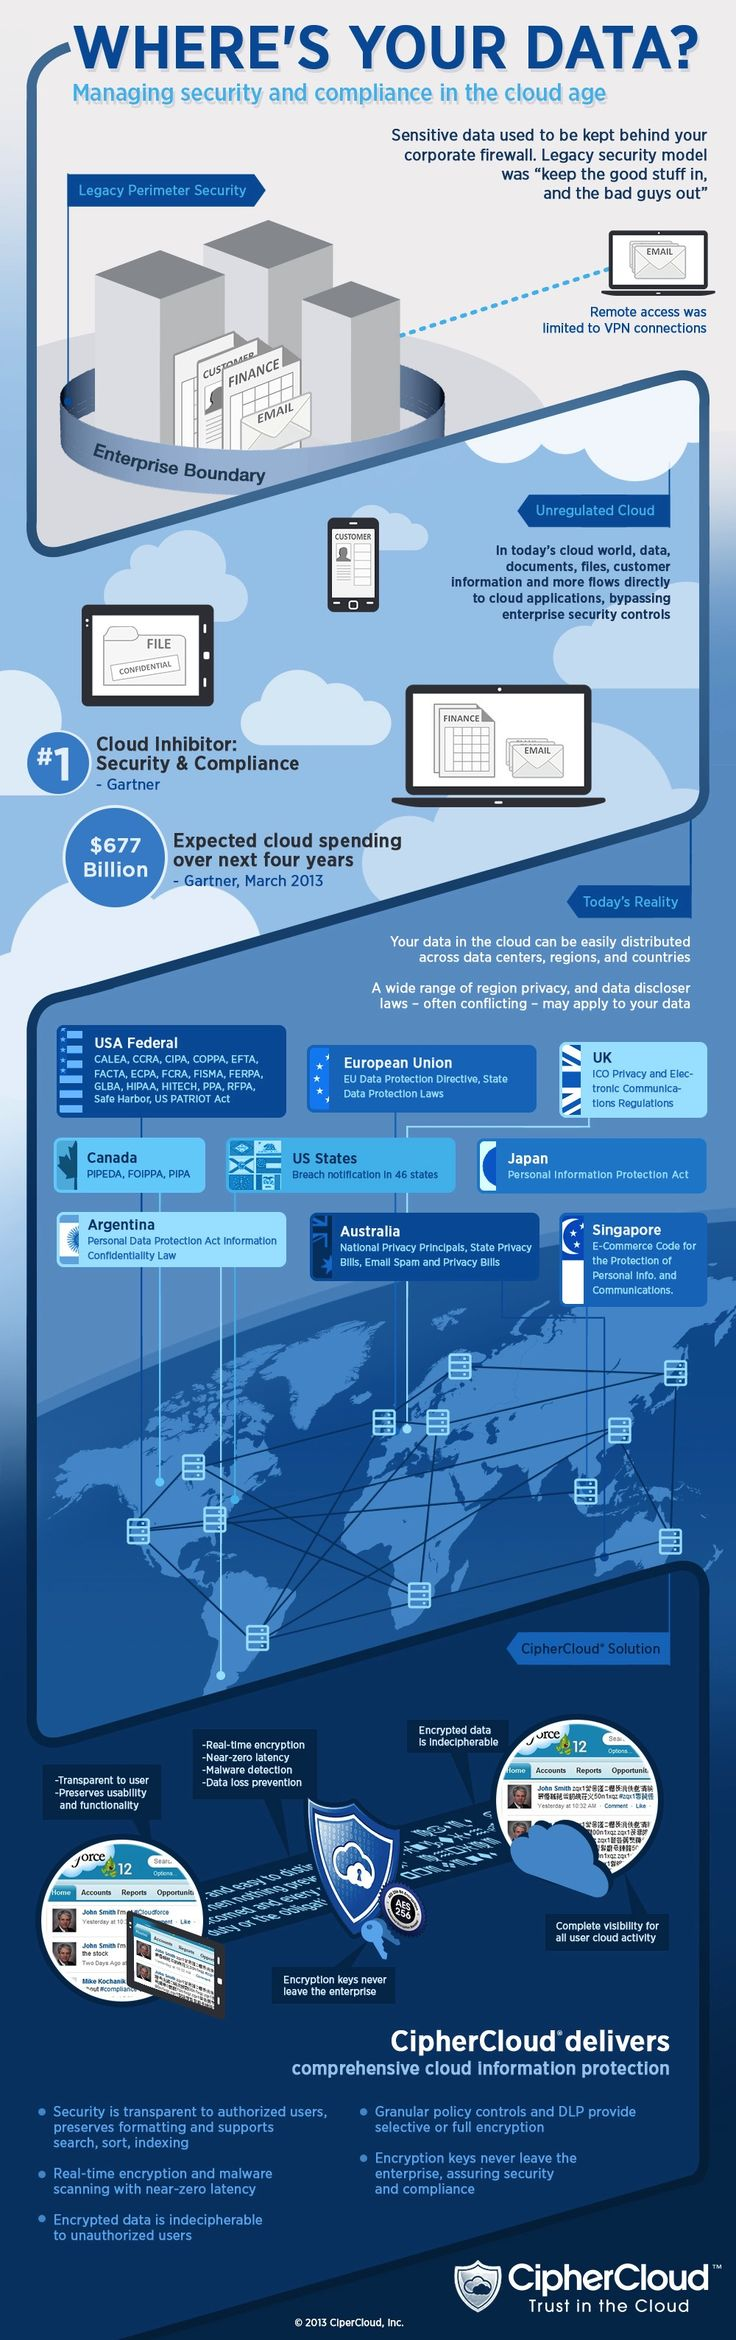 Where's Your Data? Infographic - I found this interesting. We learned about security programs for email, and here's a security program for Clouds. It is good to see security really is being pursued.